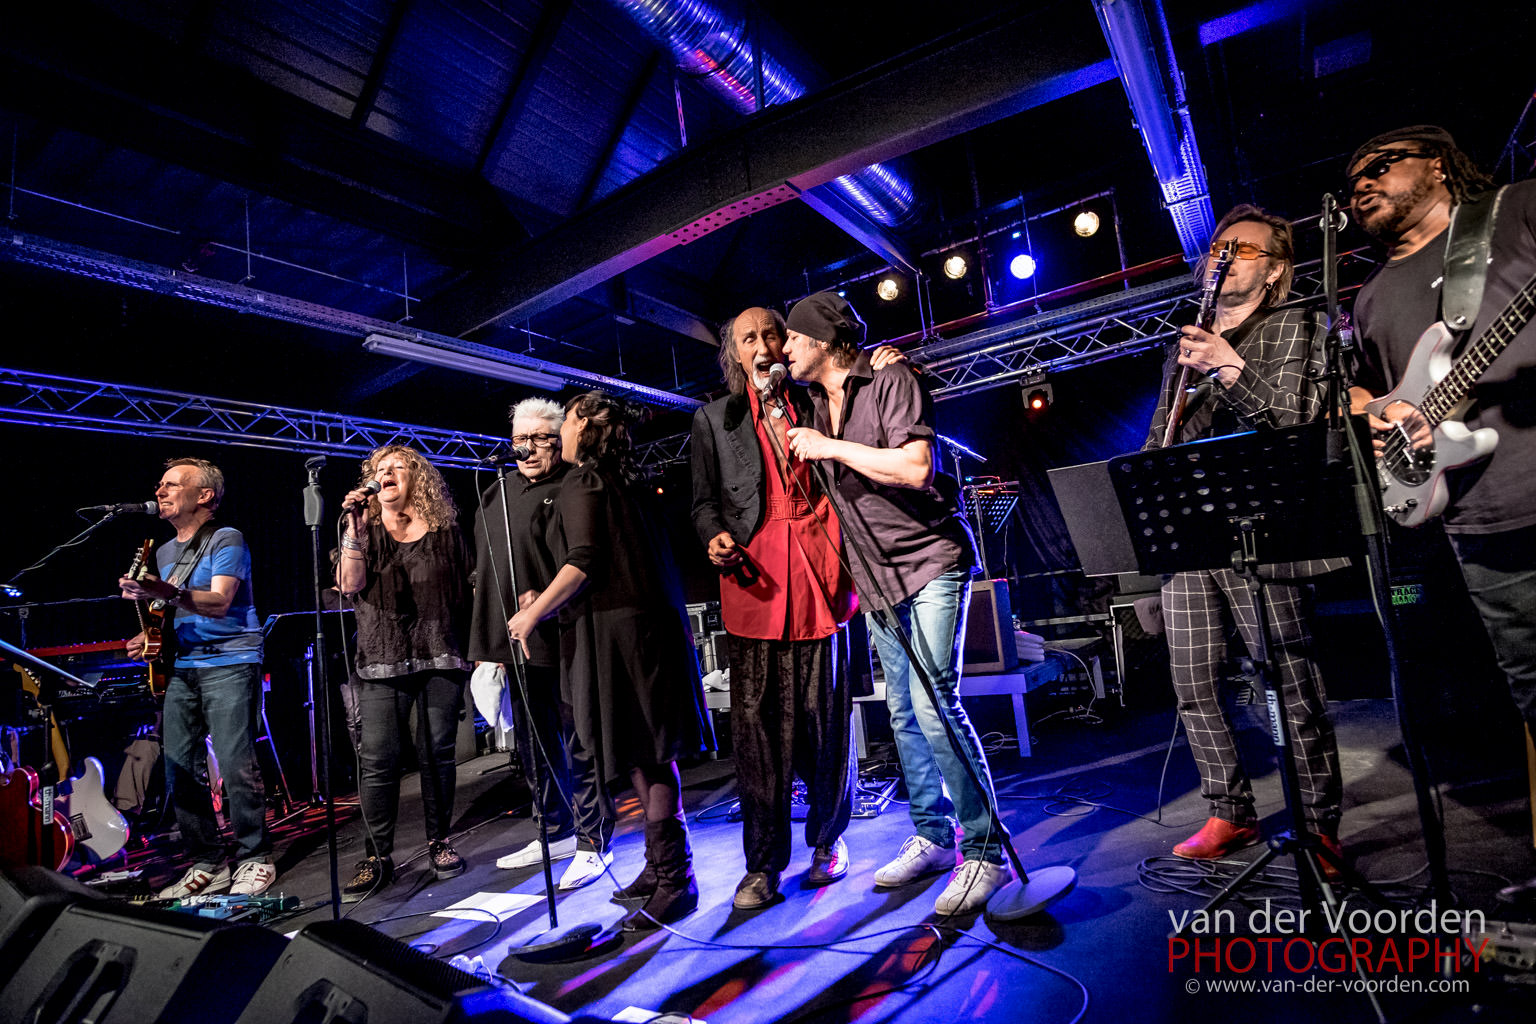 2015 The Clem Clempson Band & Friends @ Musiktheater REX Benshe